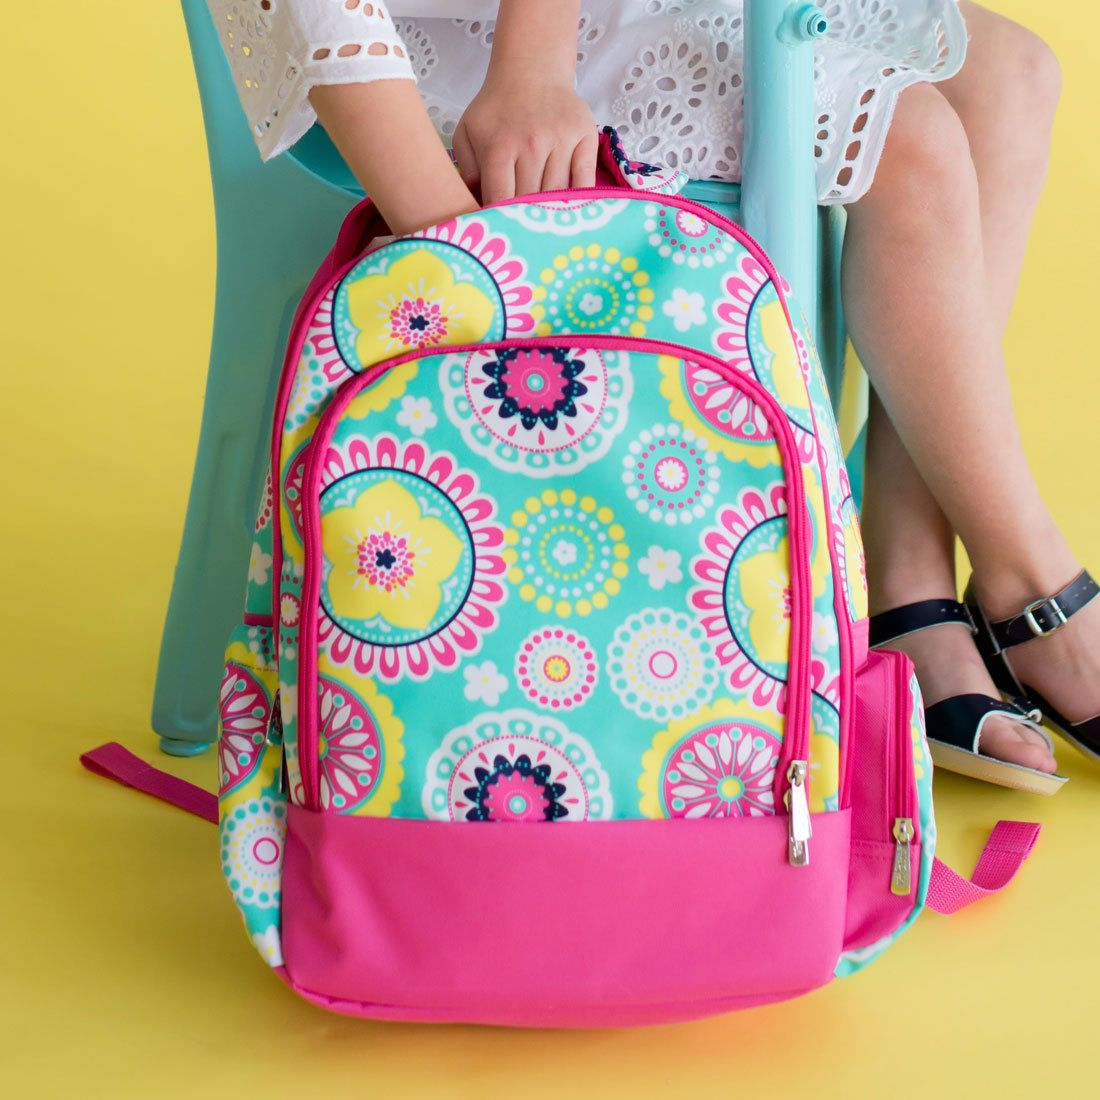 Sporty Girl Apparel - Fun and colorful  kids School backpack, $28.95 (http://www.sportygirlapparel.com/fun-and-colorful-kids-school-backpack/)